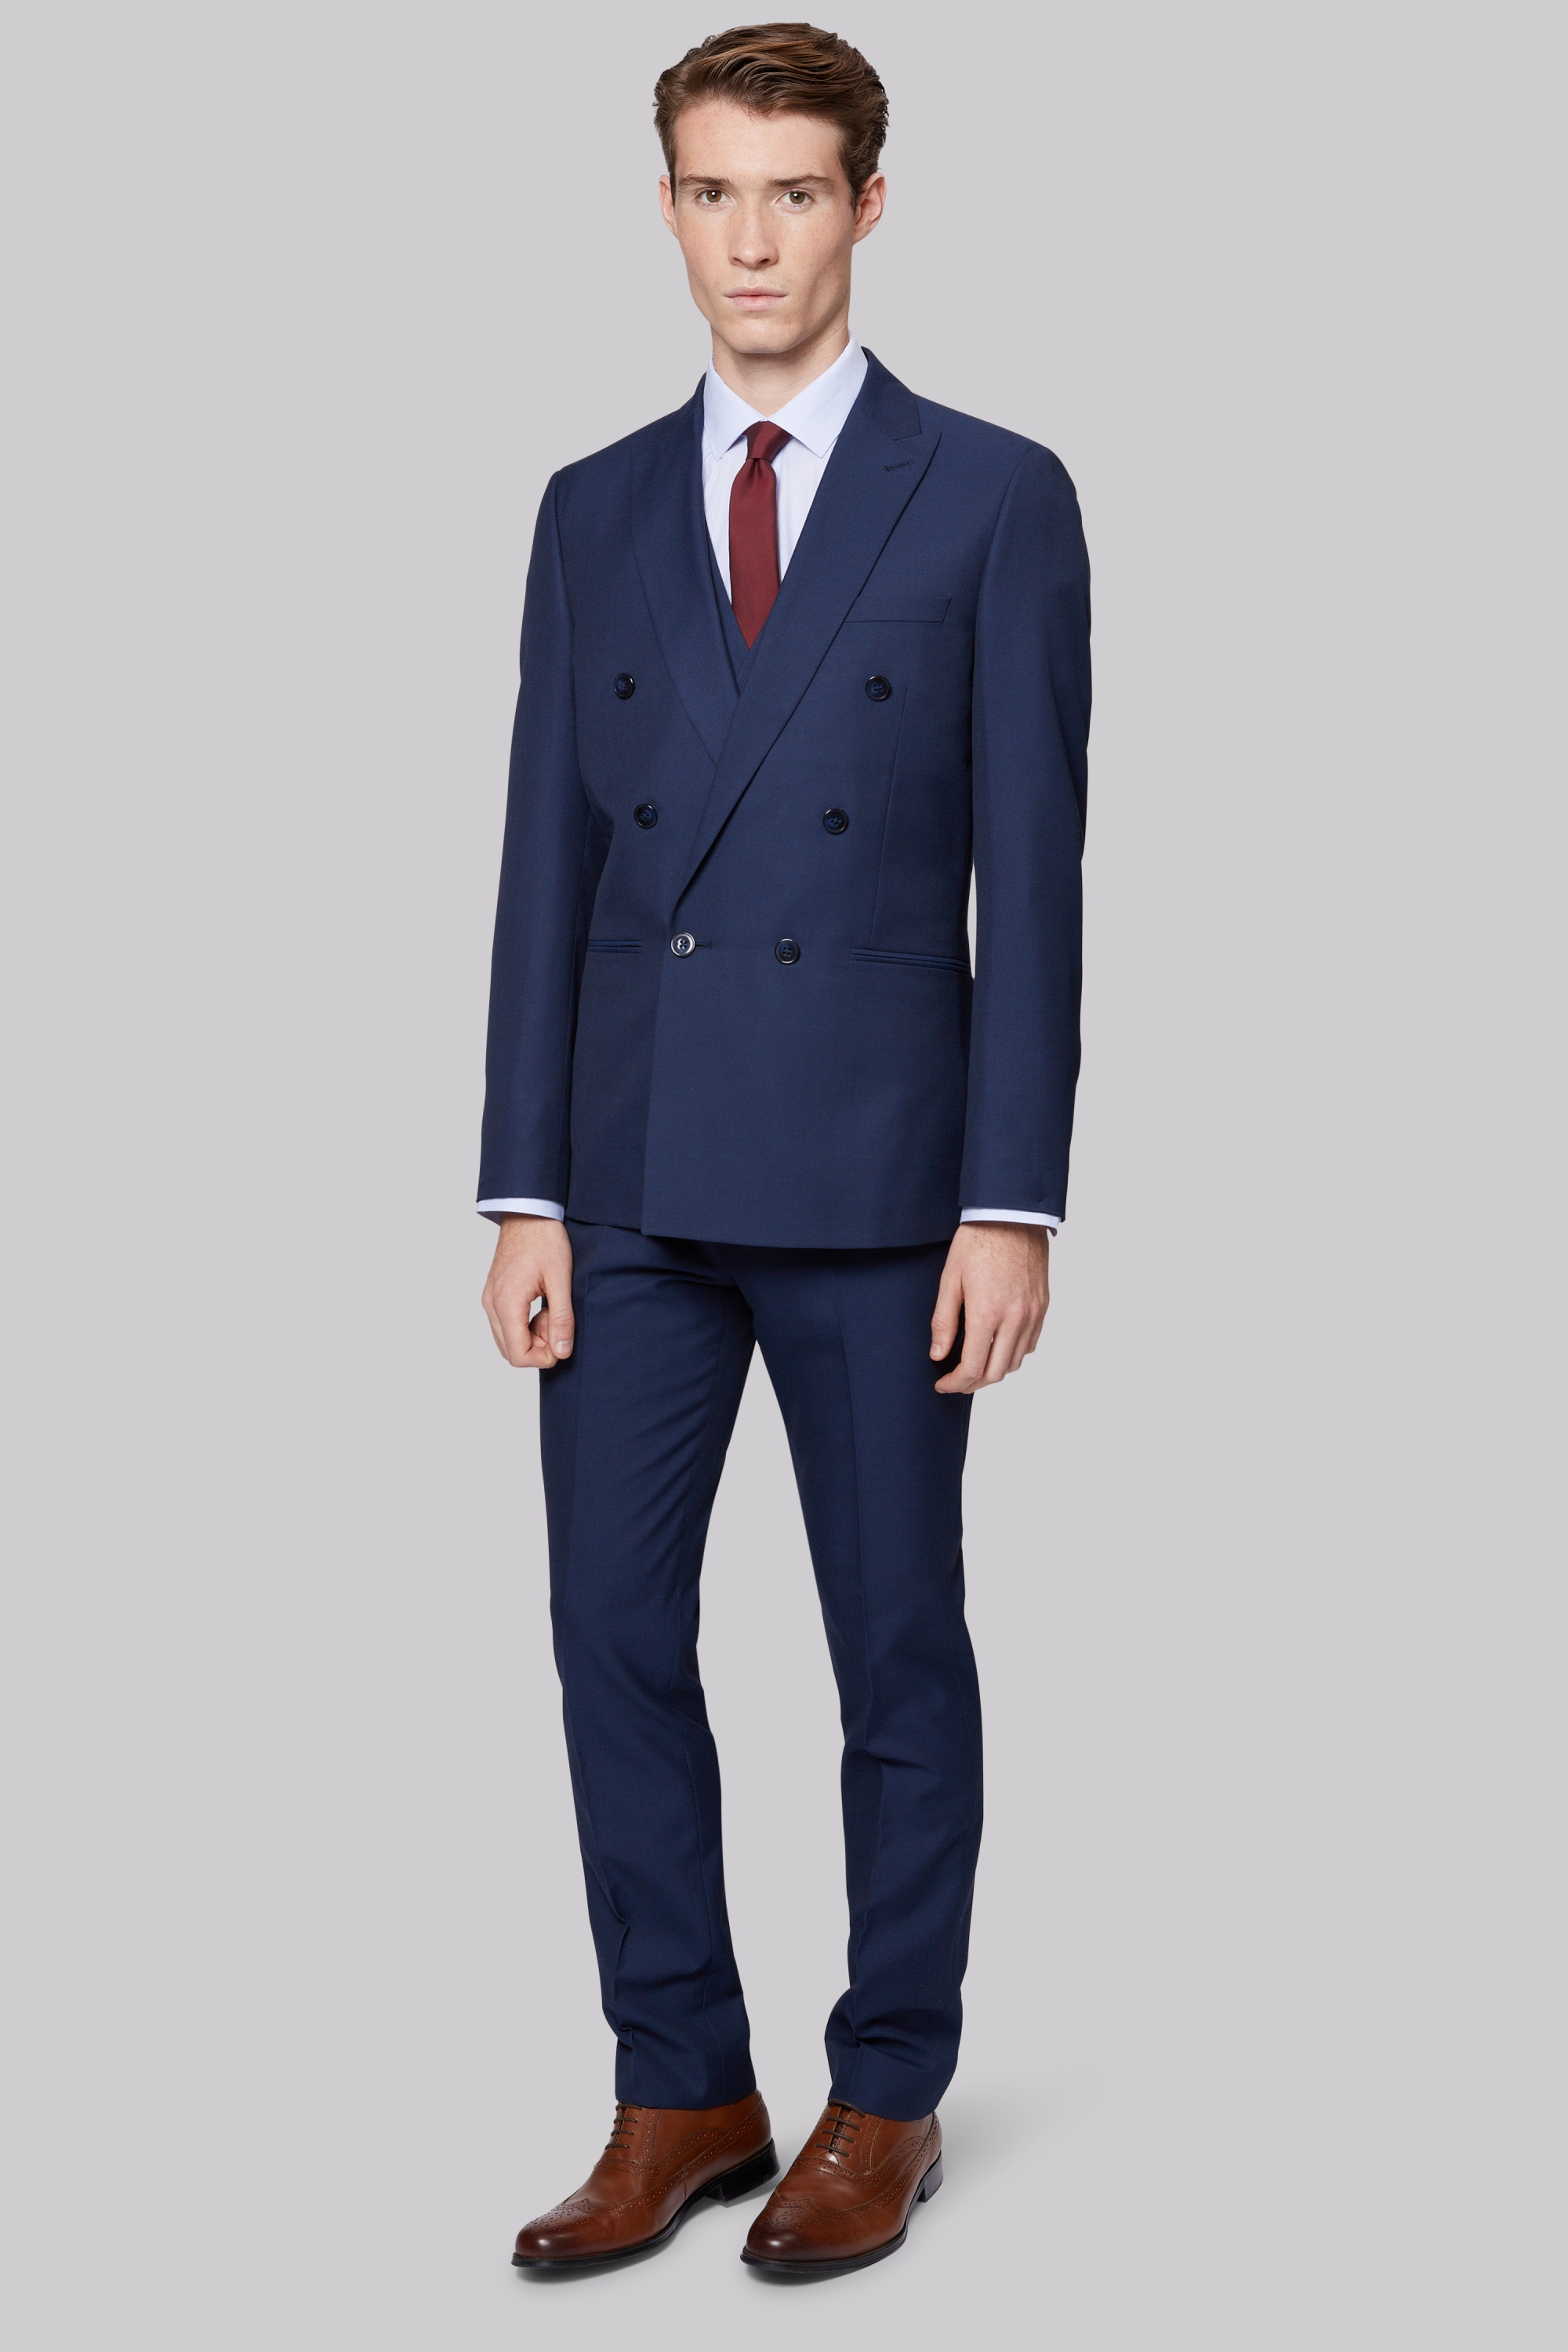 London Skinny Fit Blue Sharkskin Double Breasted Jacket